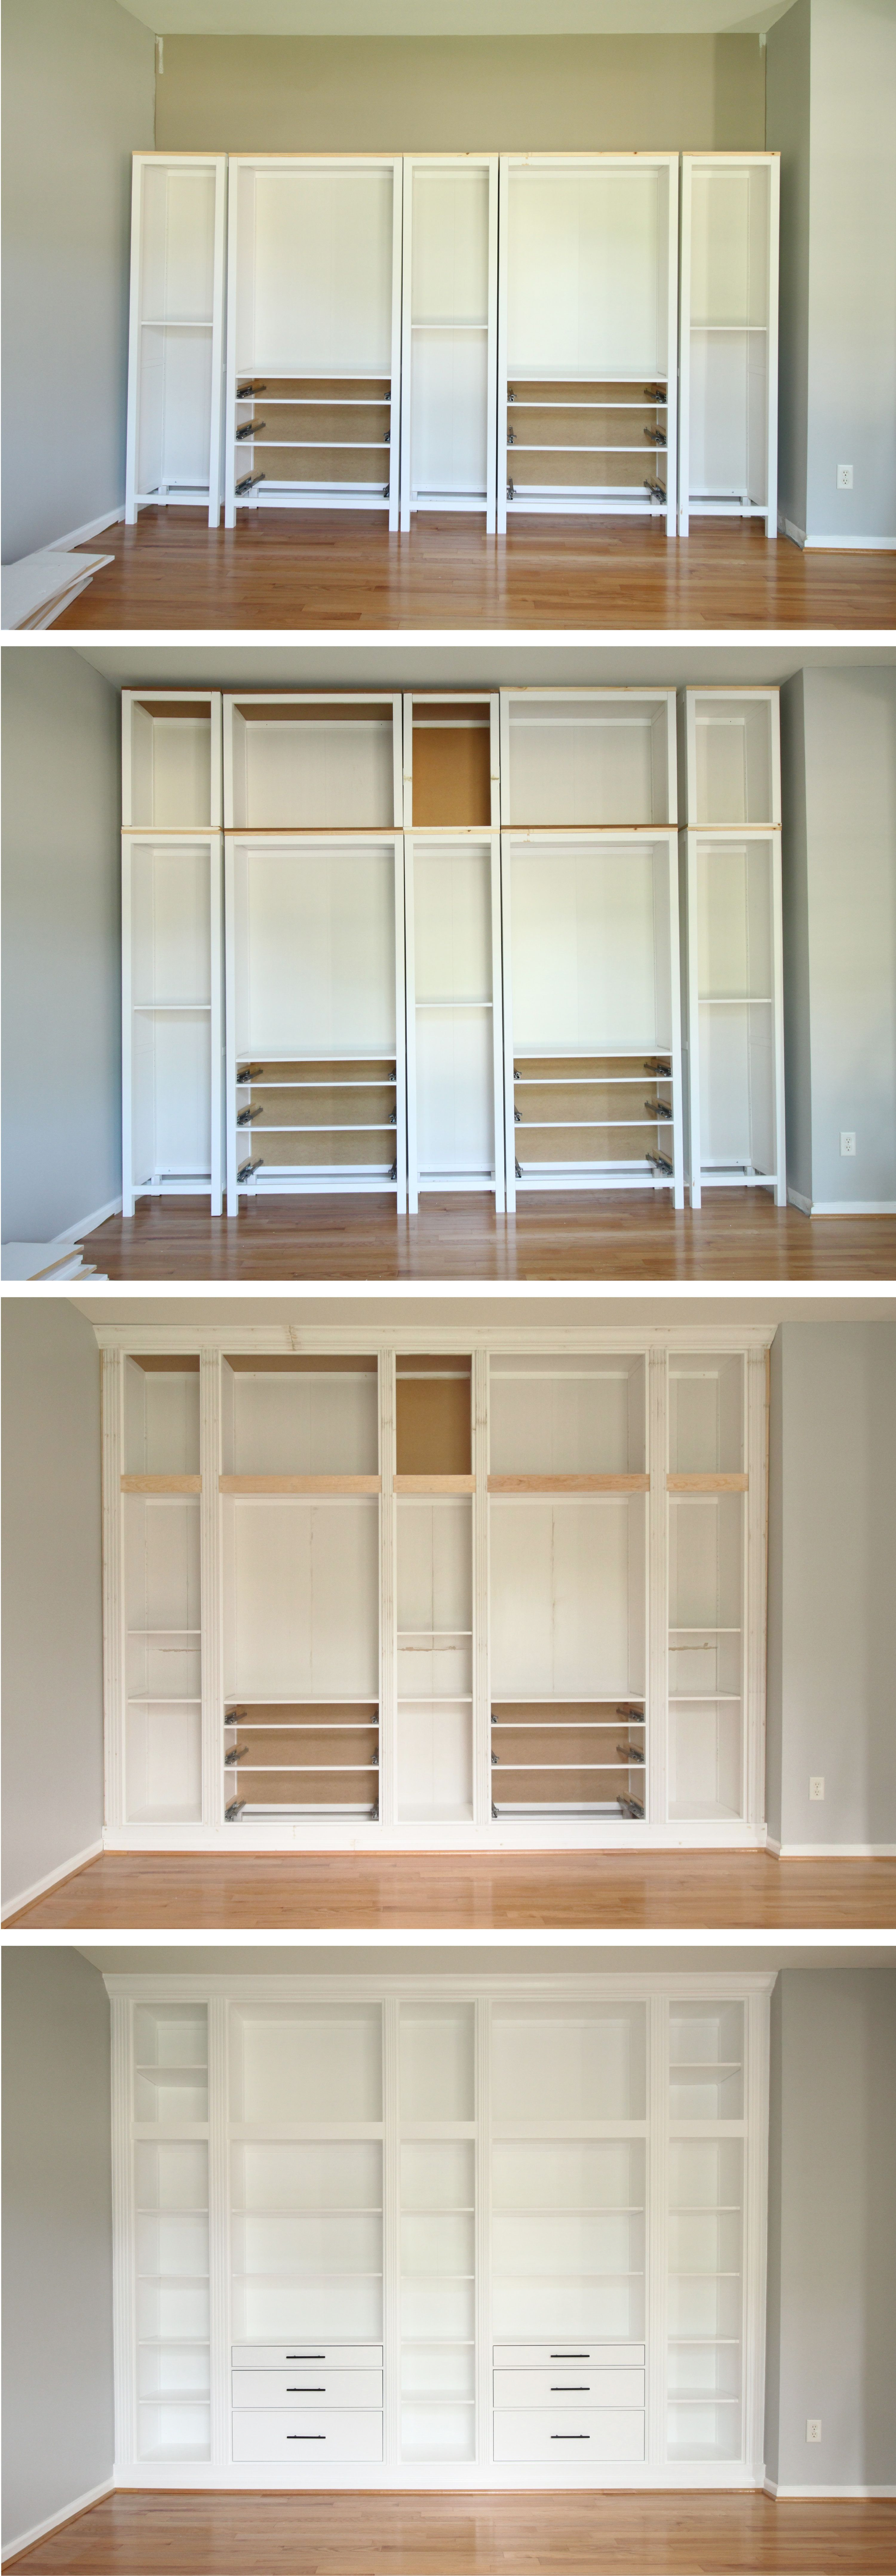 How To Build DIY Built In Bookcases From IKEA Billy Bookshelves | Ikea  Billy, Magnolia And Ikea Hack